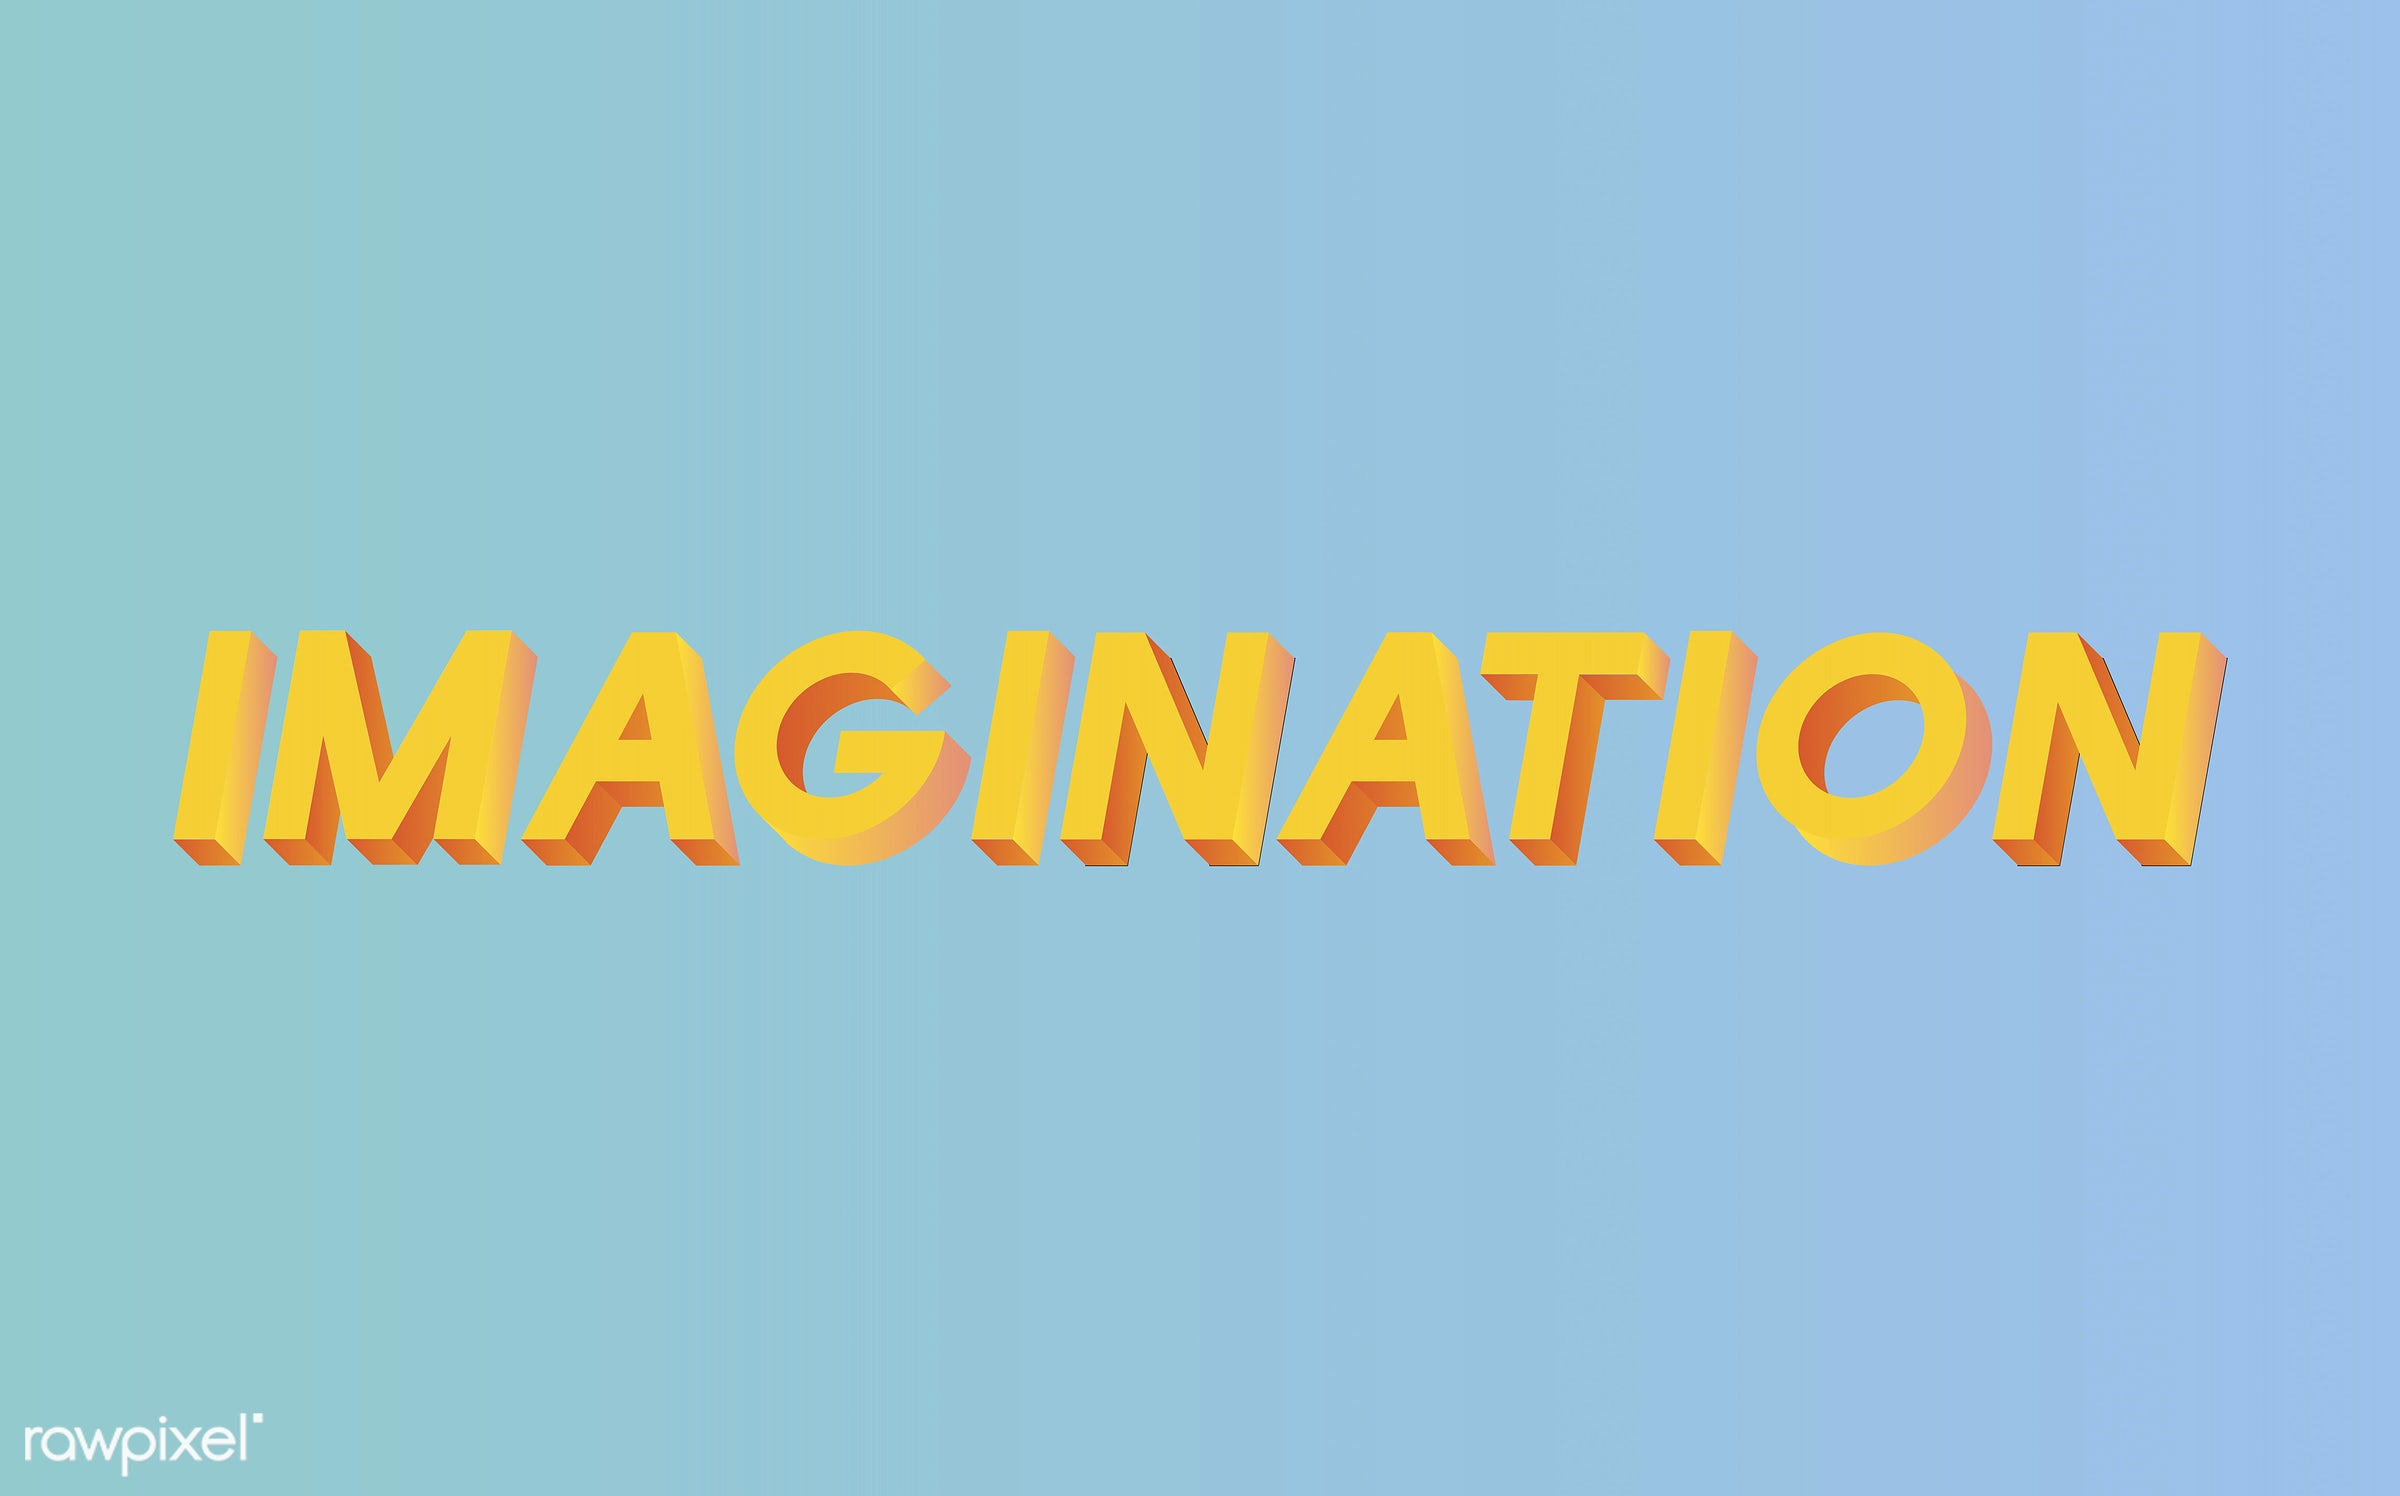 neon, colorful, 3d, three dimensional, vector, illustration, graphic, word, blue, yellow, imagination, ideas, imagine